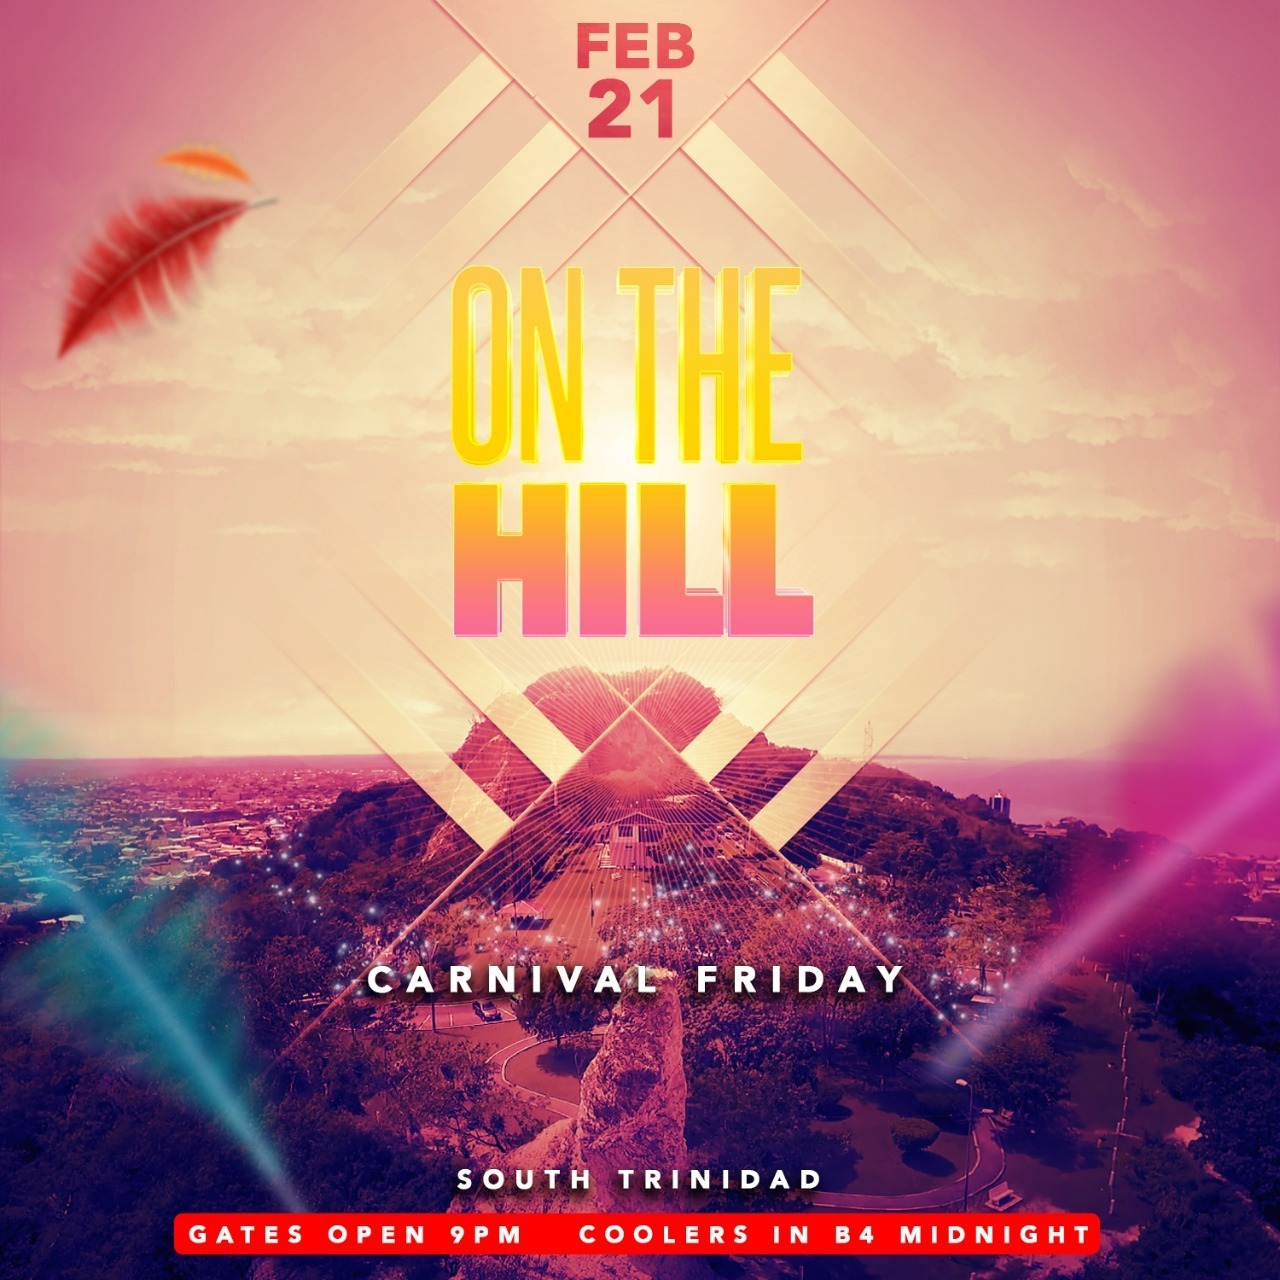 On The Hill - Carnival Friday